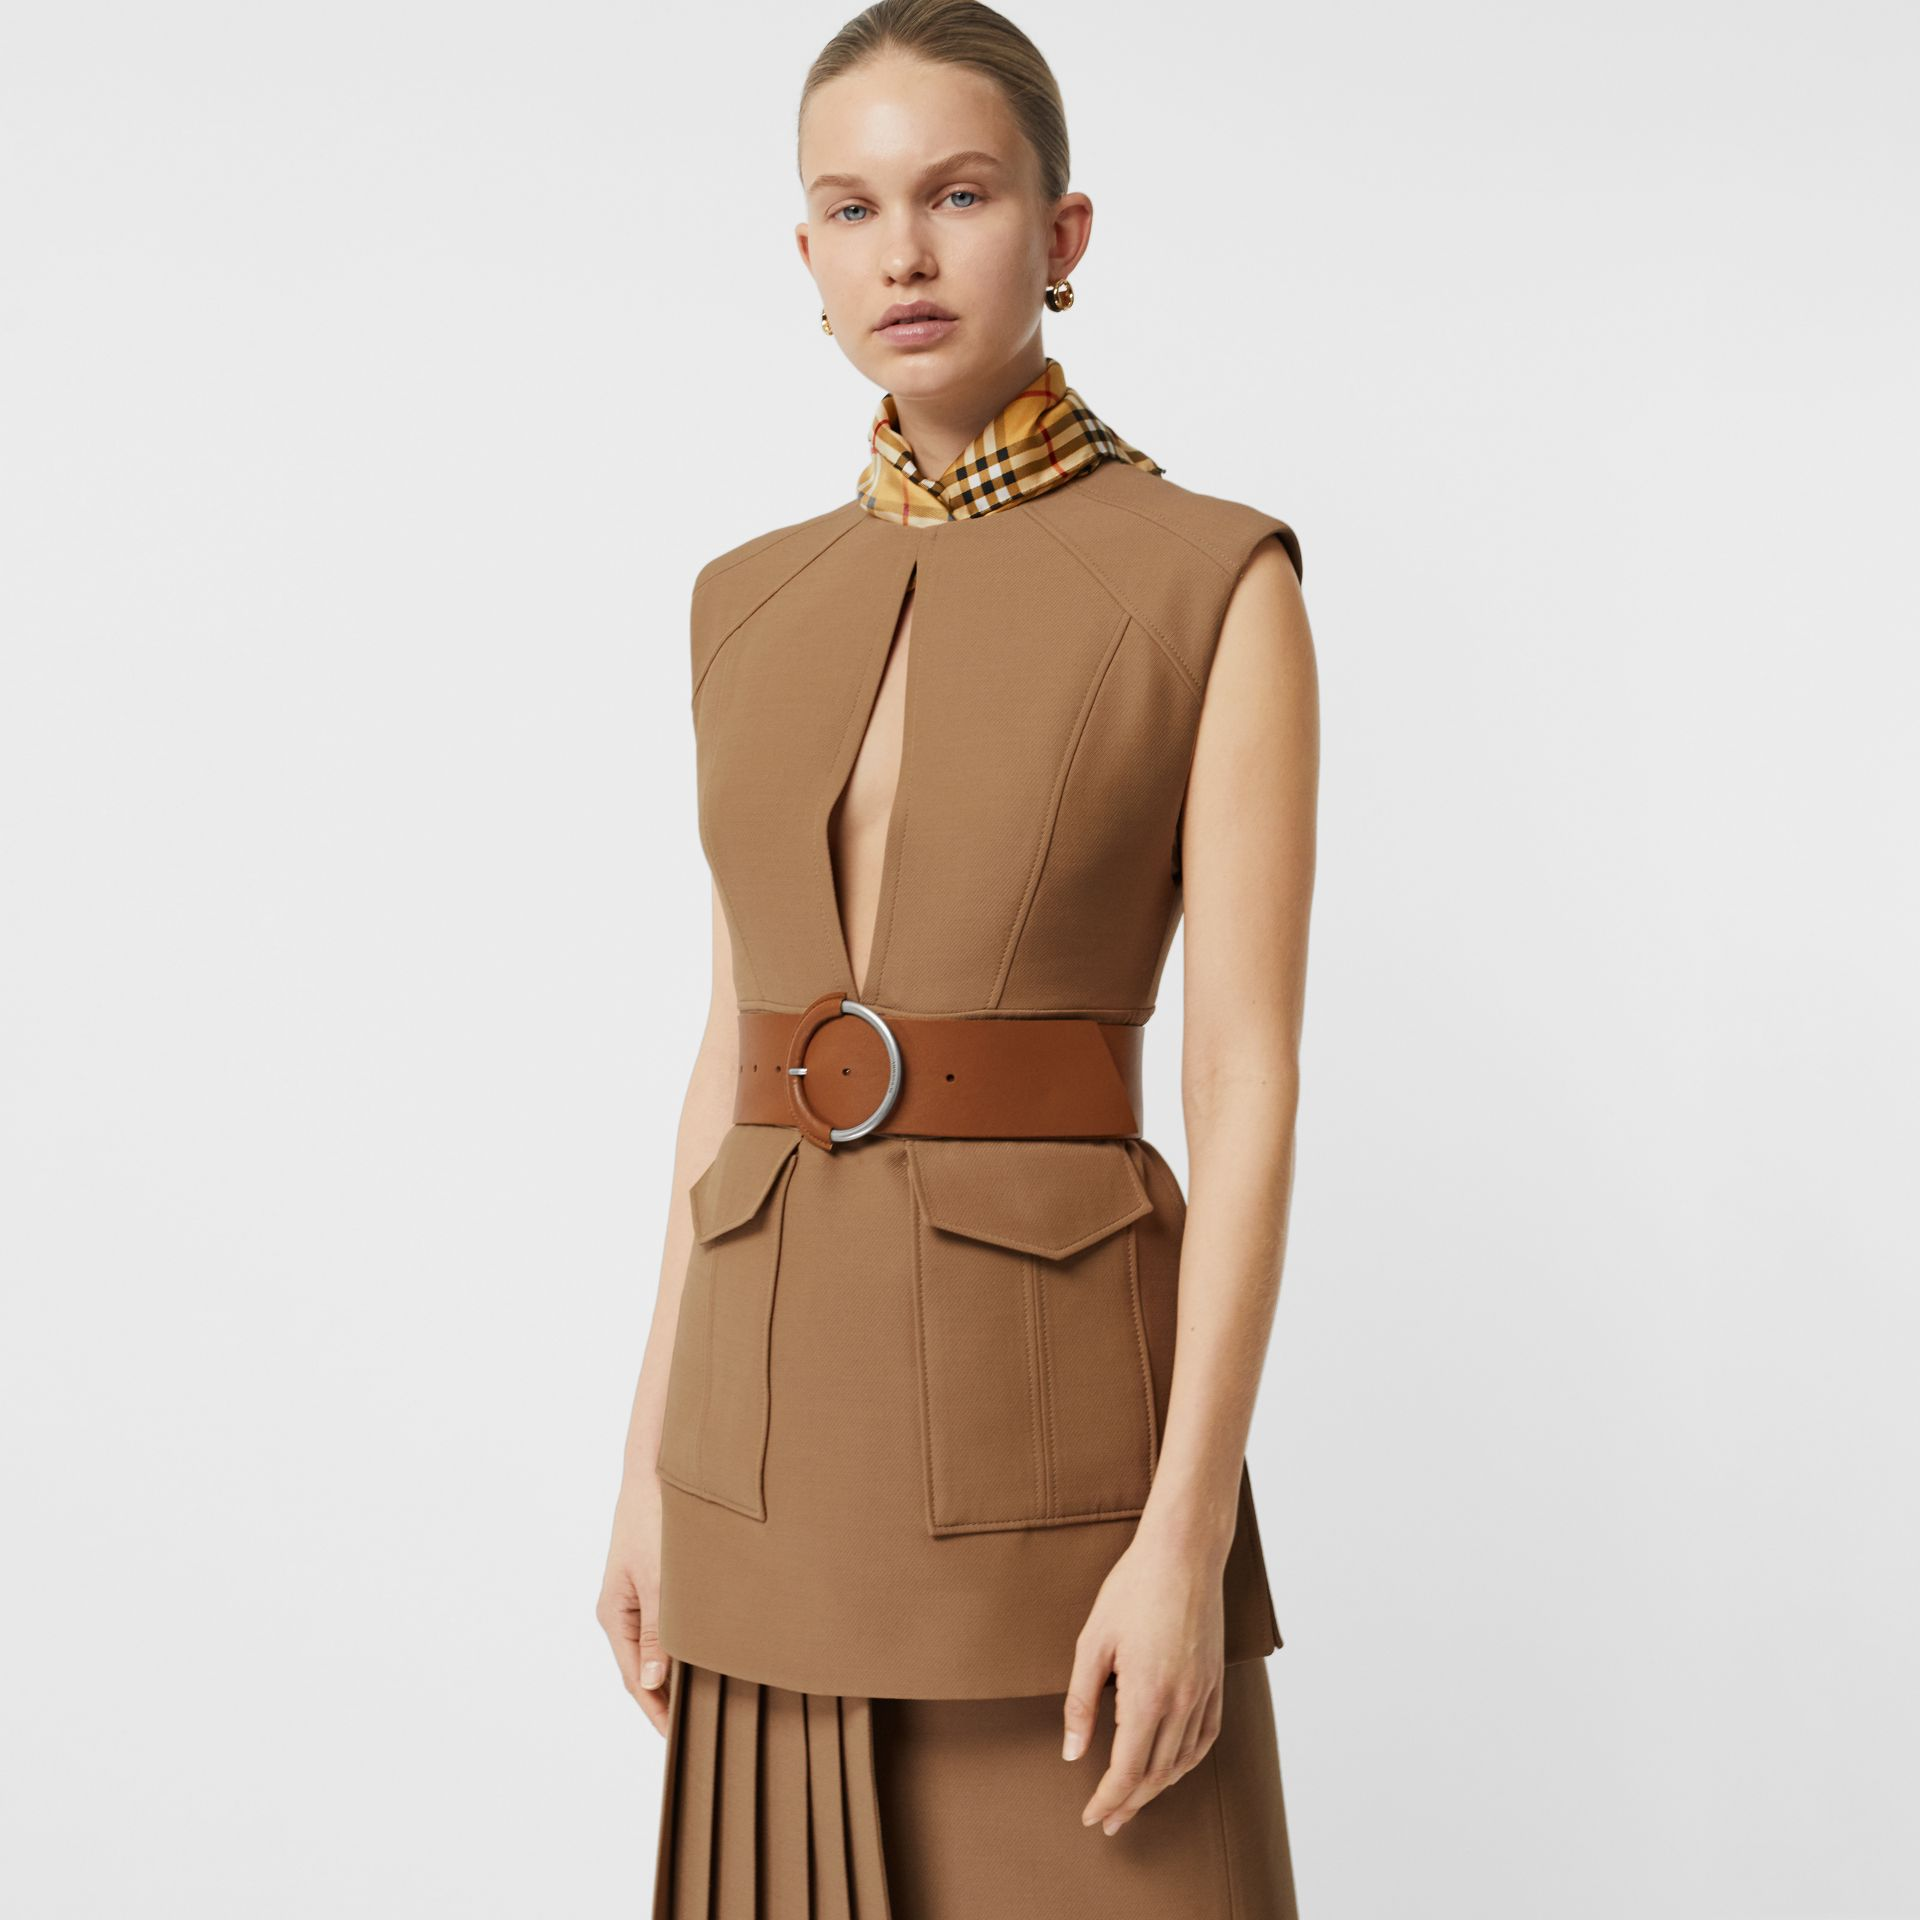 Keyhole Detail Sleeveless Wool Silk Top in Camel - Women | Burberry United Kingdom - gallery image 4